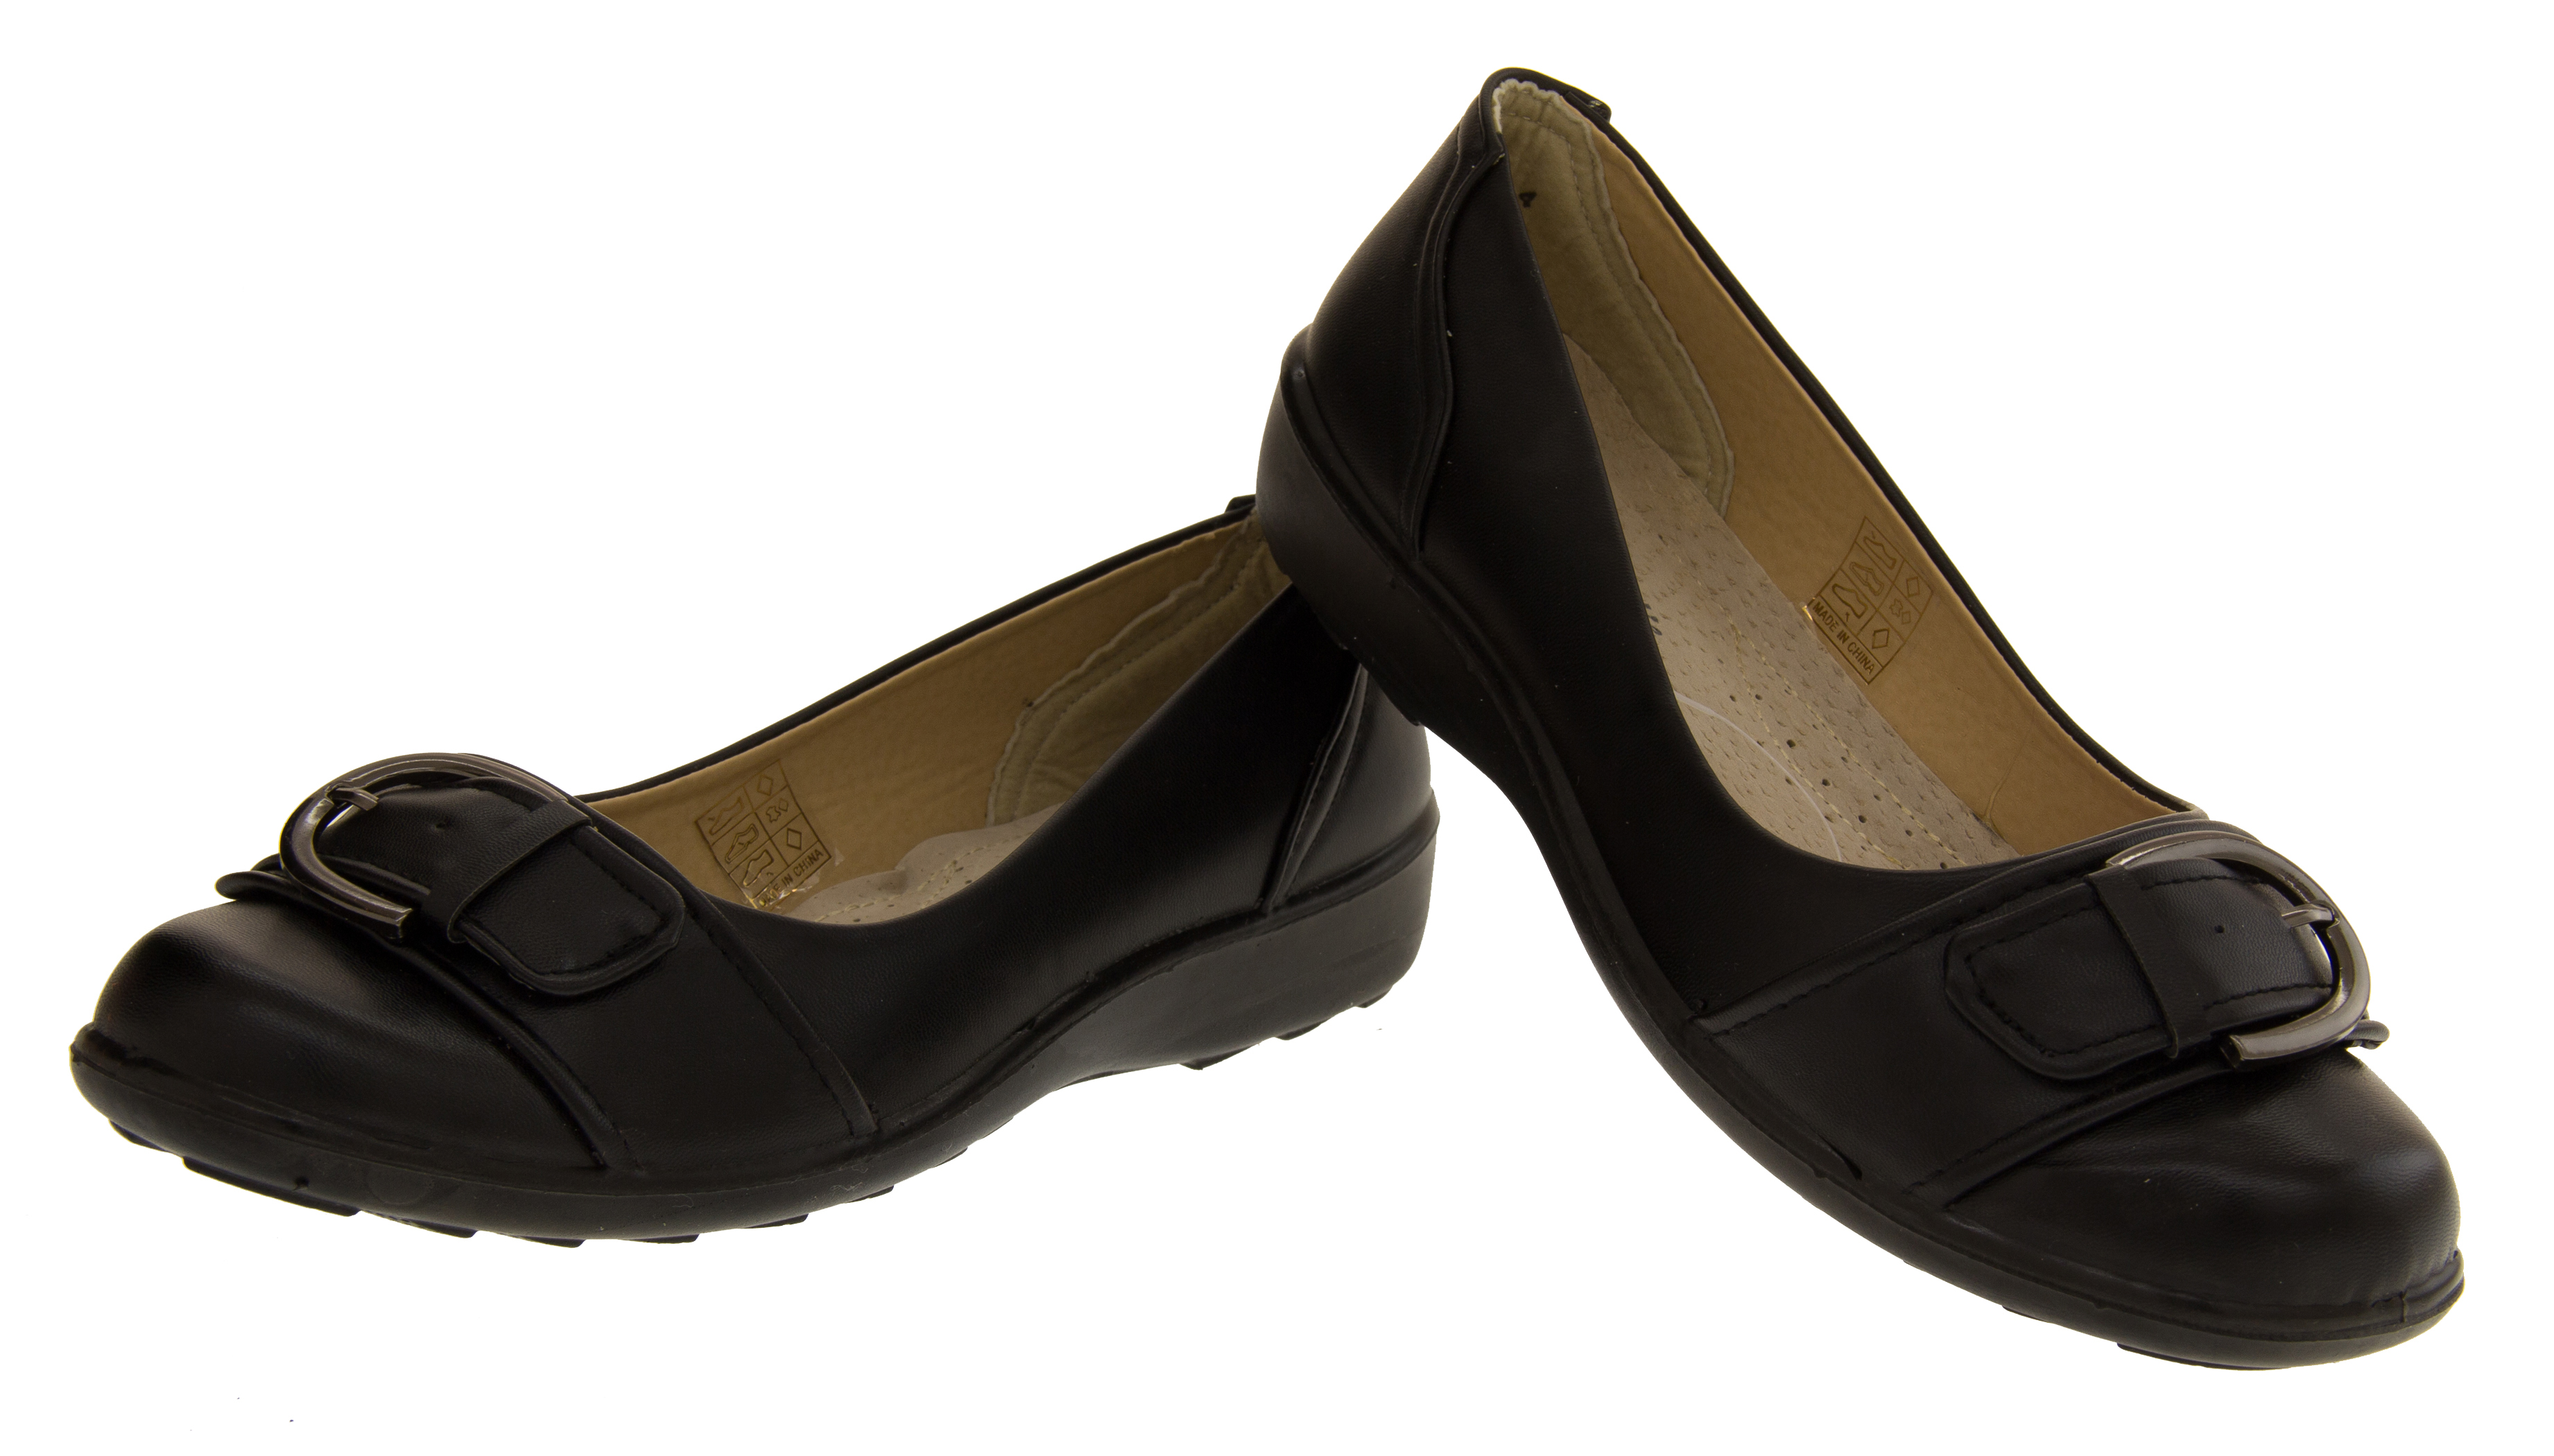 Buy low price, high quality ladies black shoes size 7 with worldwide shipping on rusticzcountrysstylexhomedecor.tk